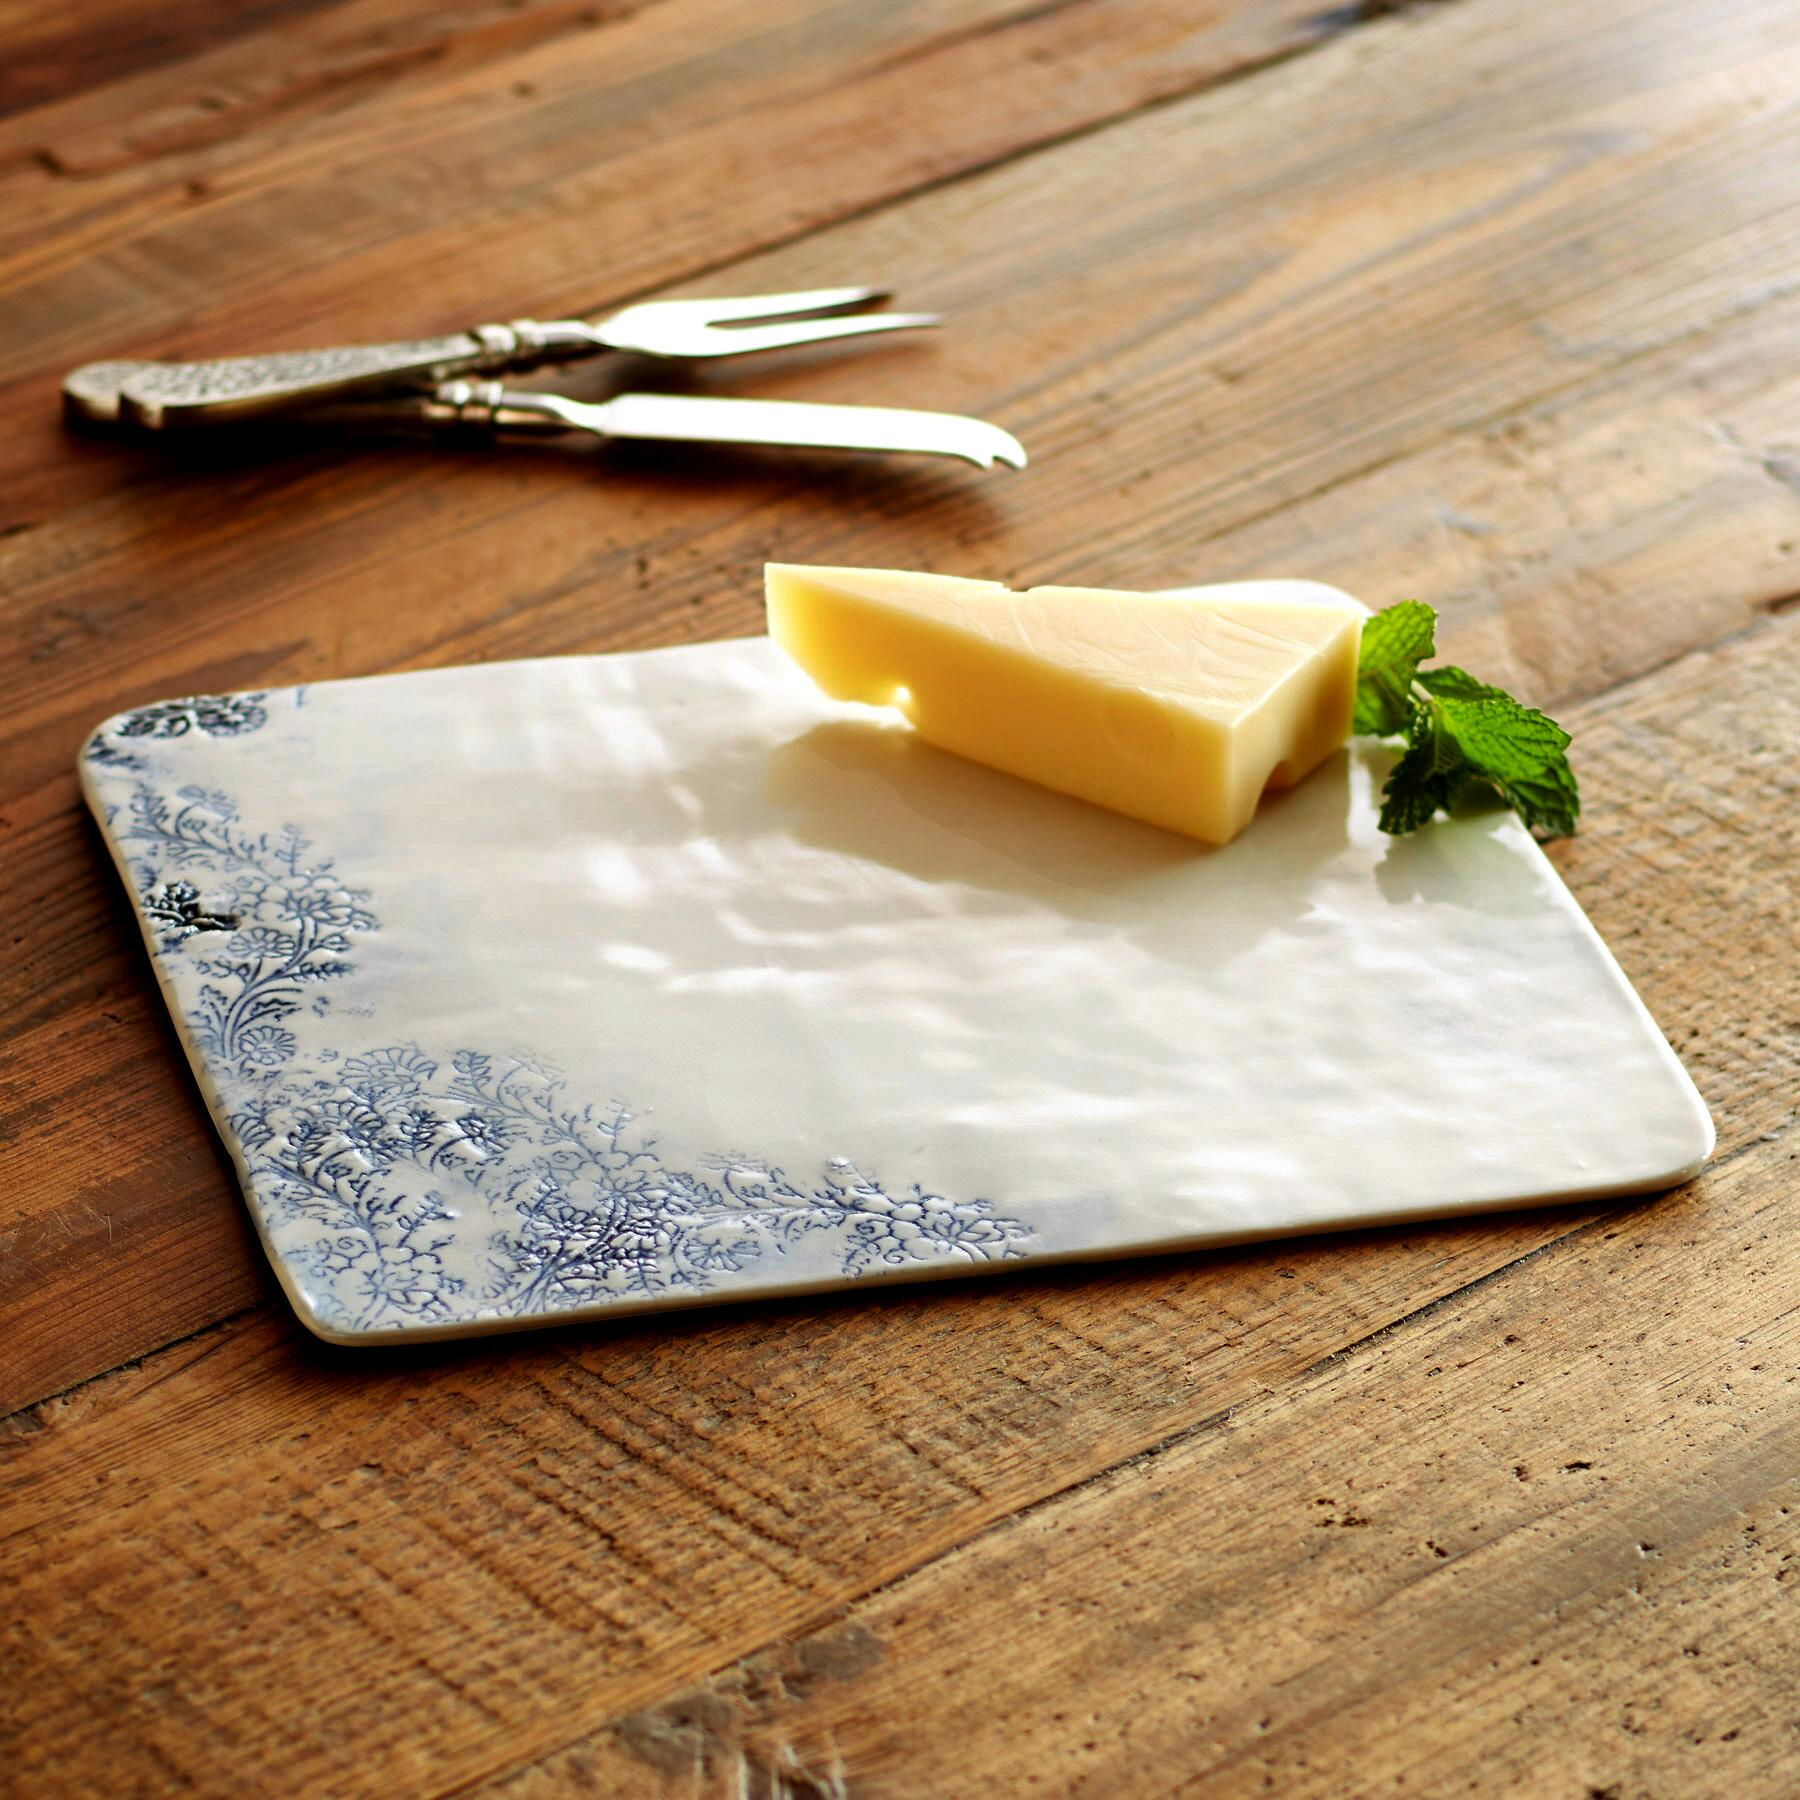 INDIGO CHEESE BOARD: View 2